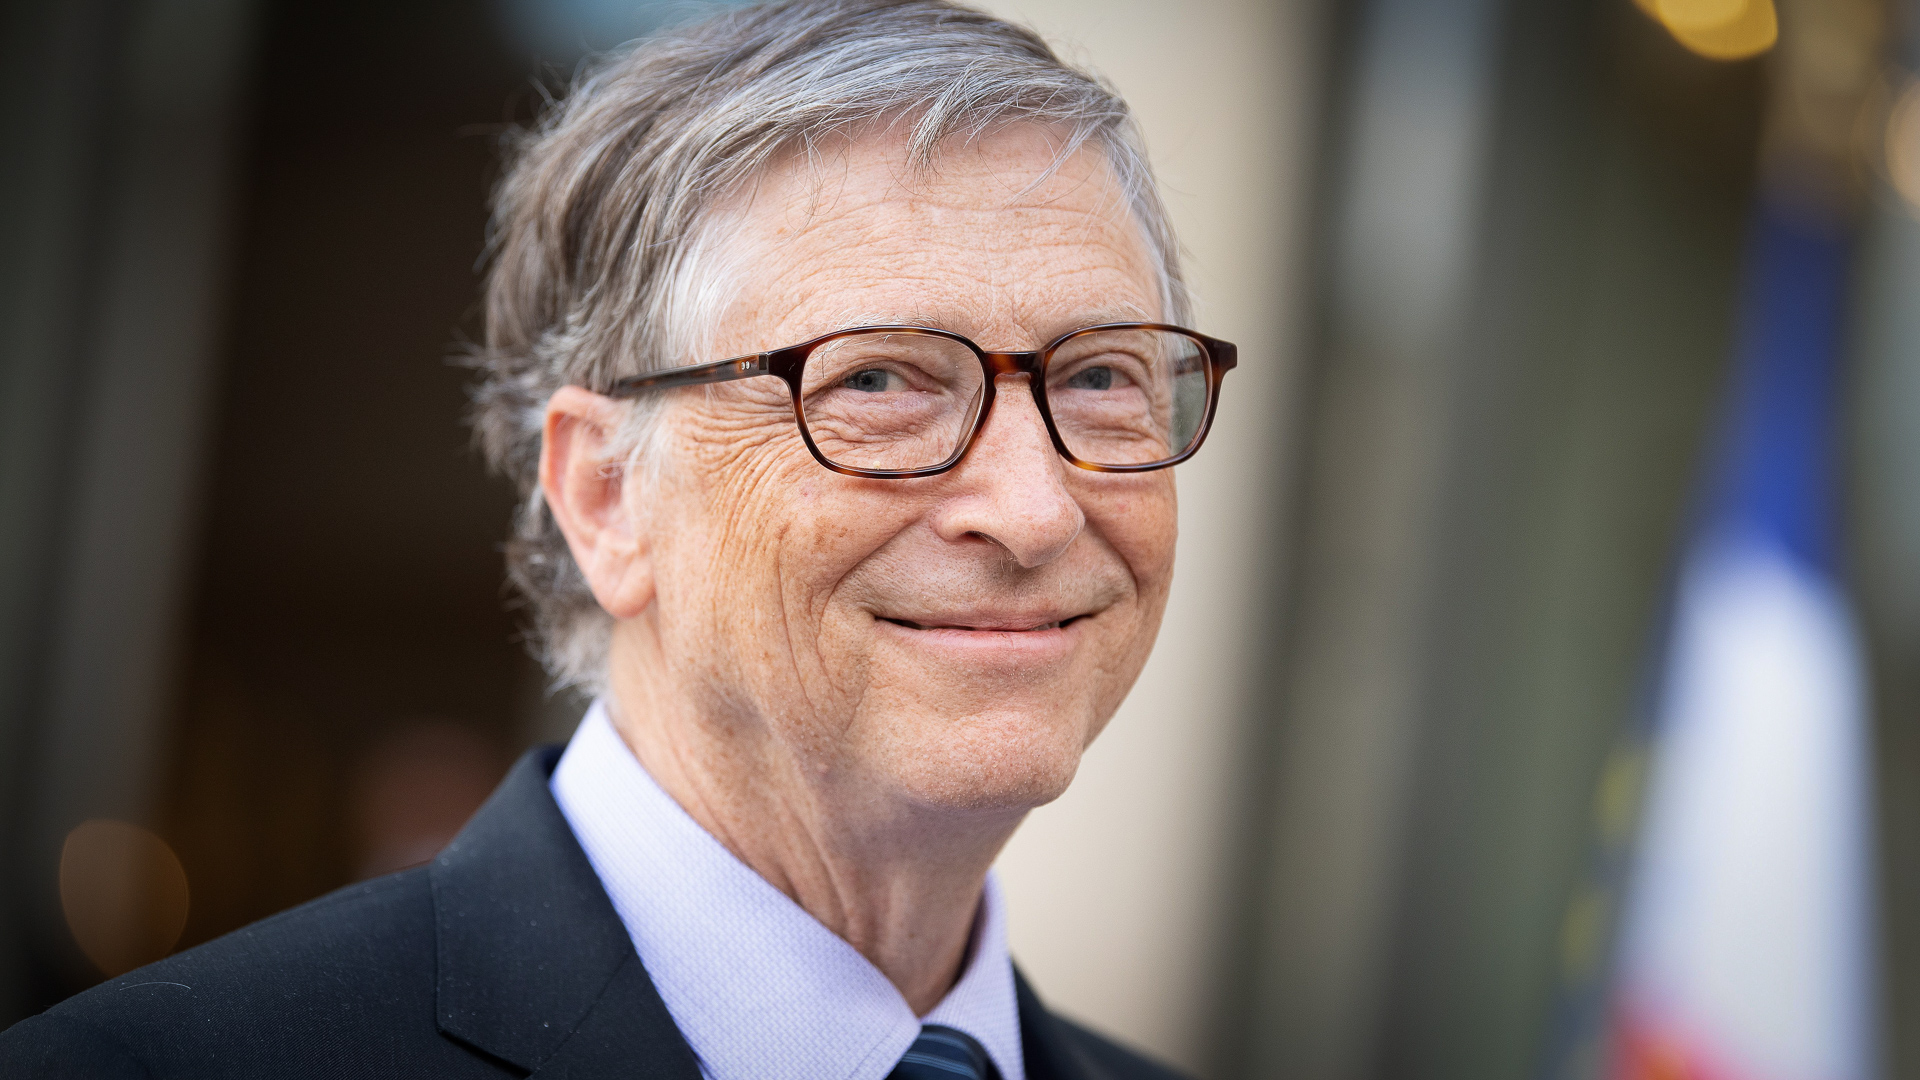 Bill Gates Loses $112 Million in One Day, Is Booted Out of Billionaires Club's Most Elite Level